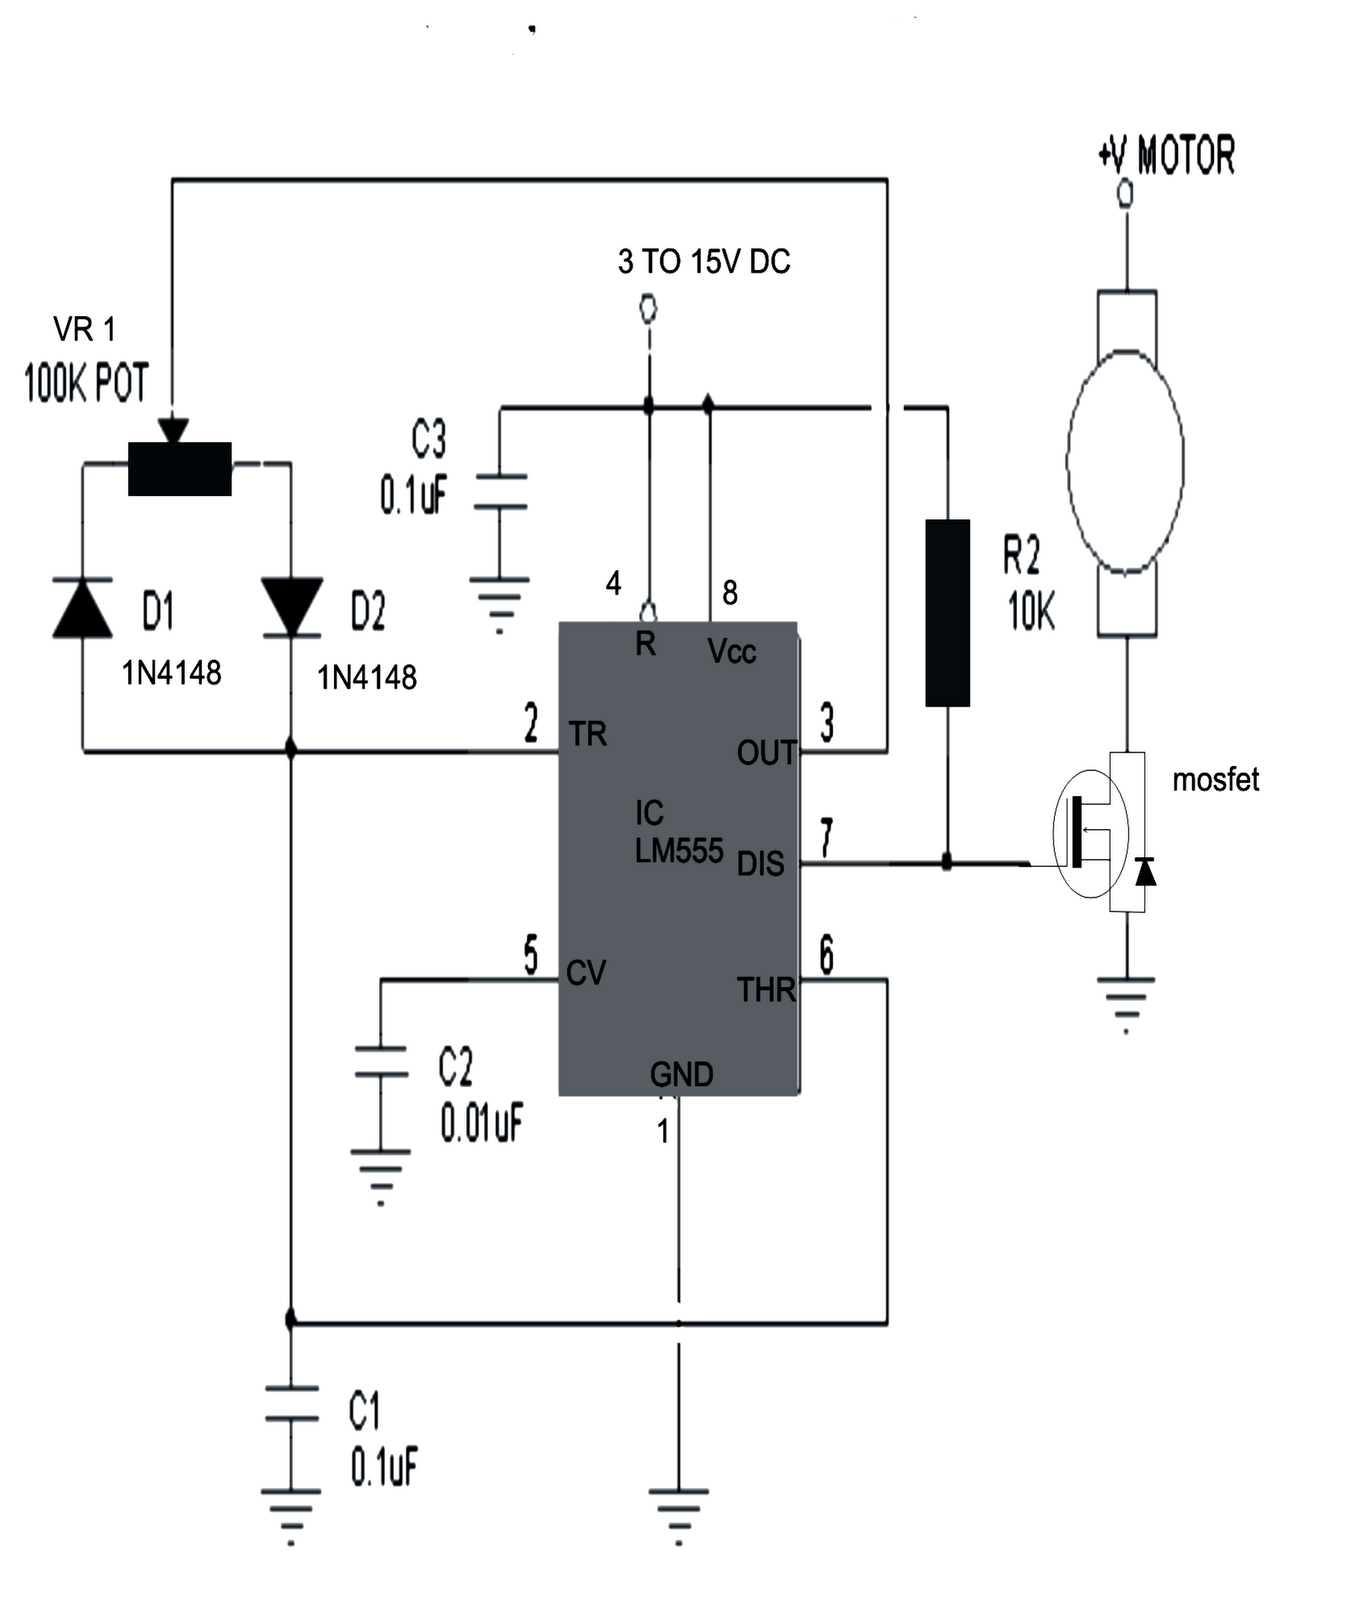 220v dc motor contel circuit digarm circuit diagram images for Schematic diagram of dc motor